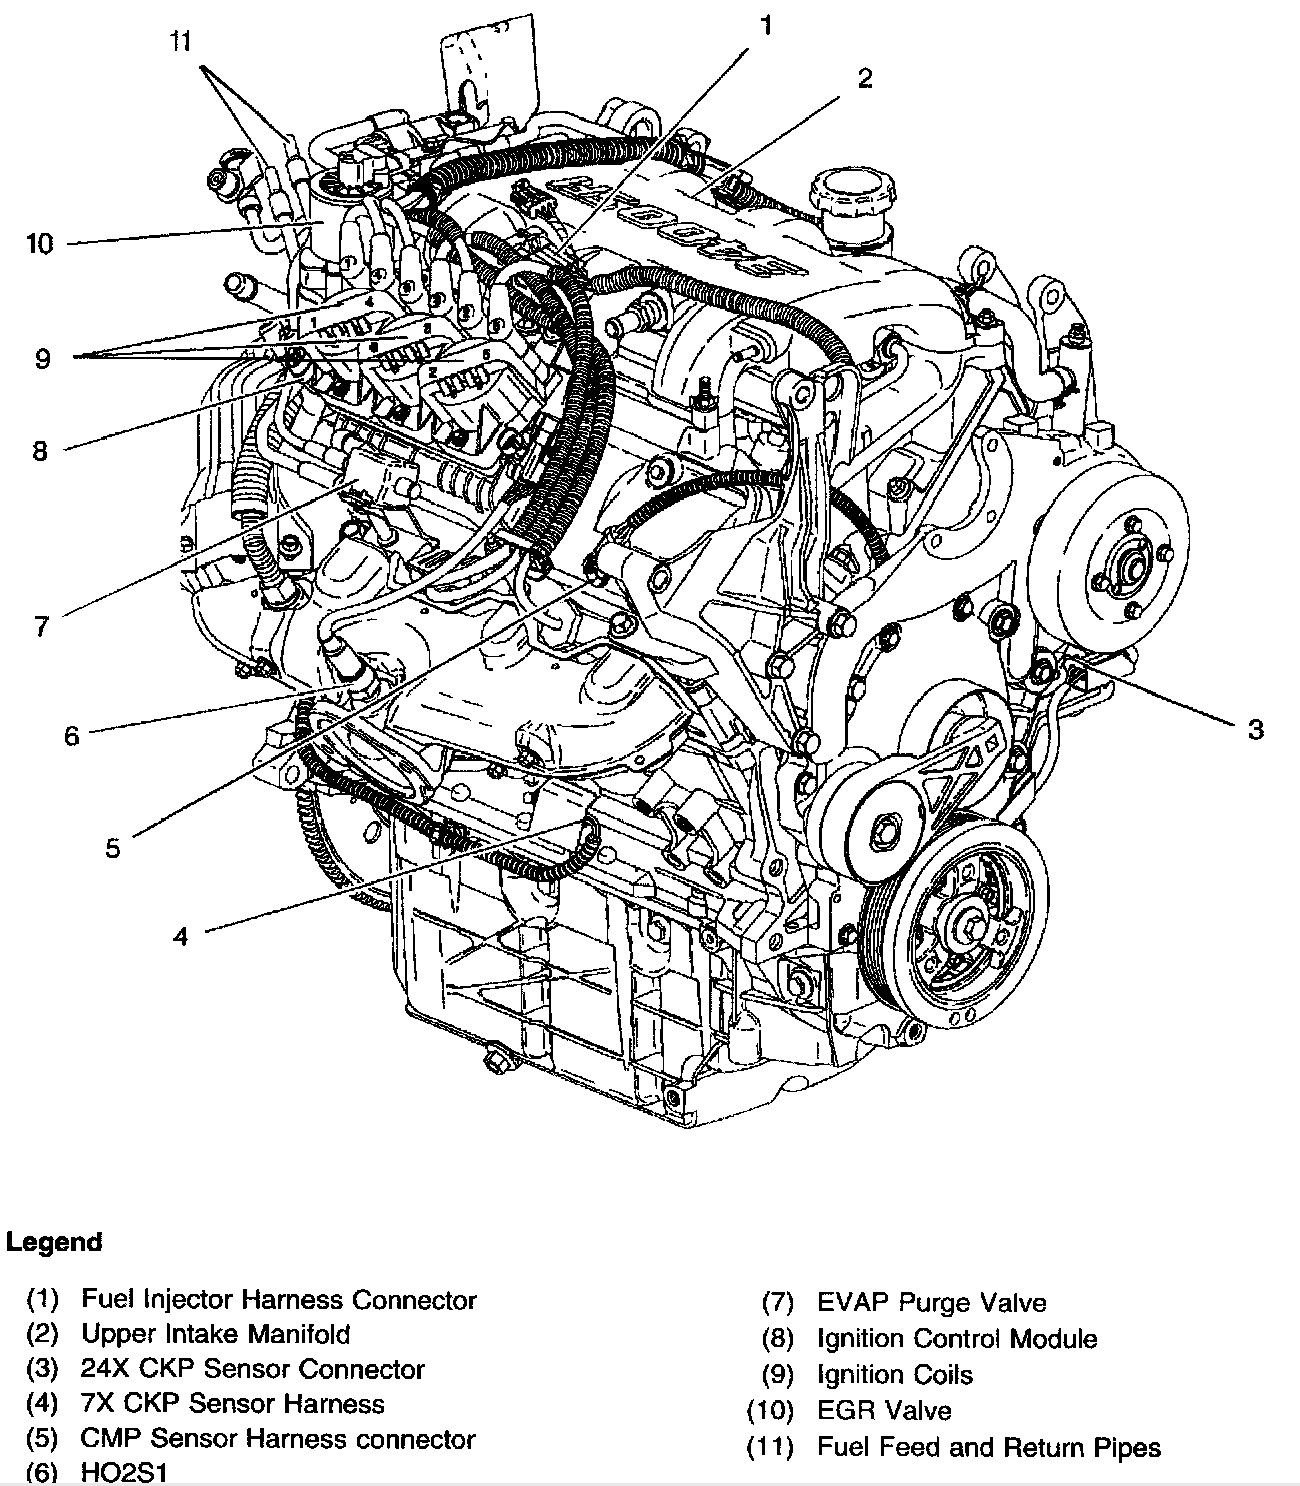 3400 Sfi Engine Cooling System Diagram Chevy Impala 3 4 Engine Diagram Of 3400 Sfi Engine Cooling System Diagram